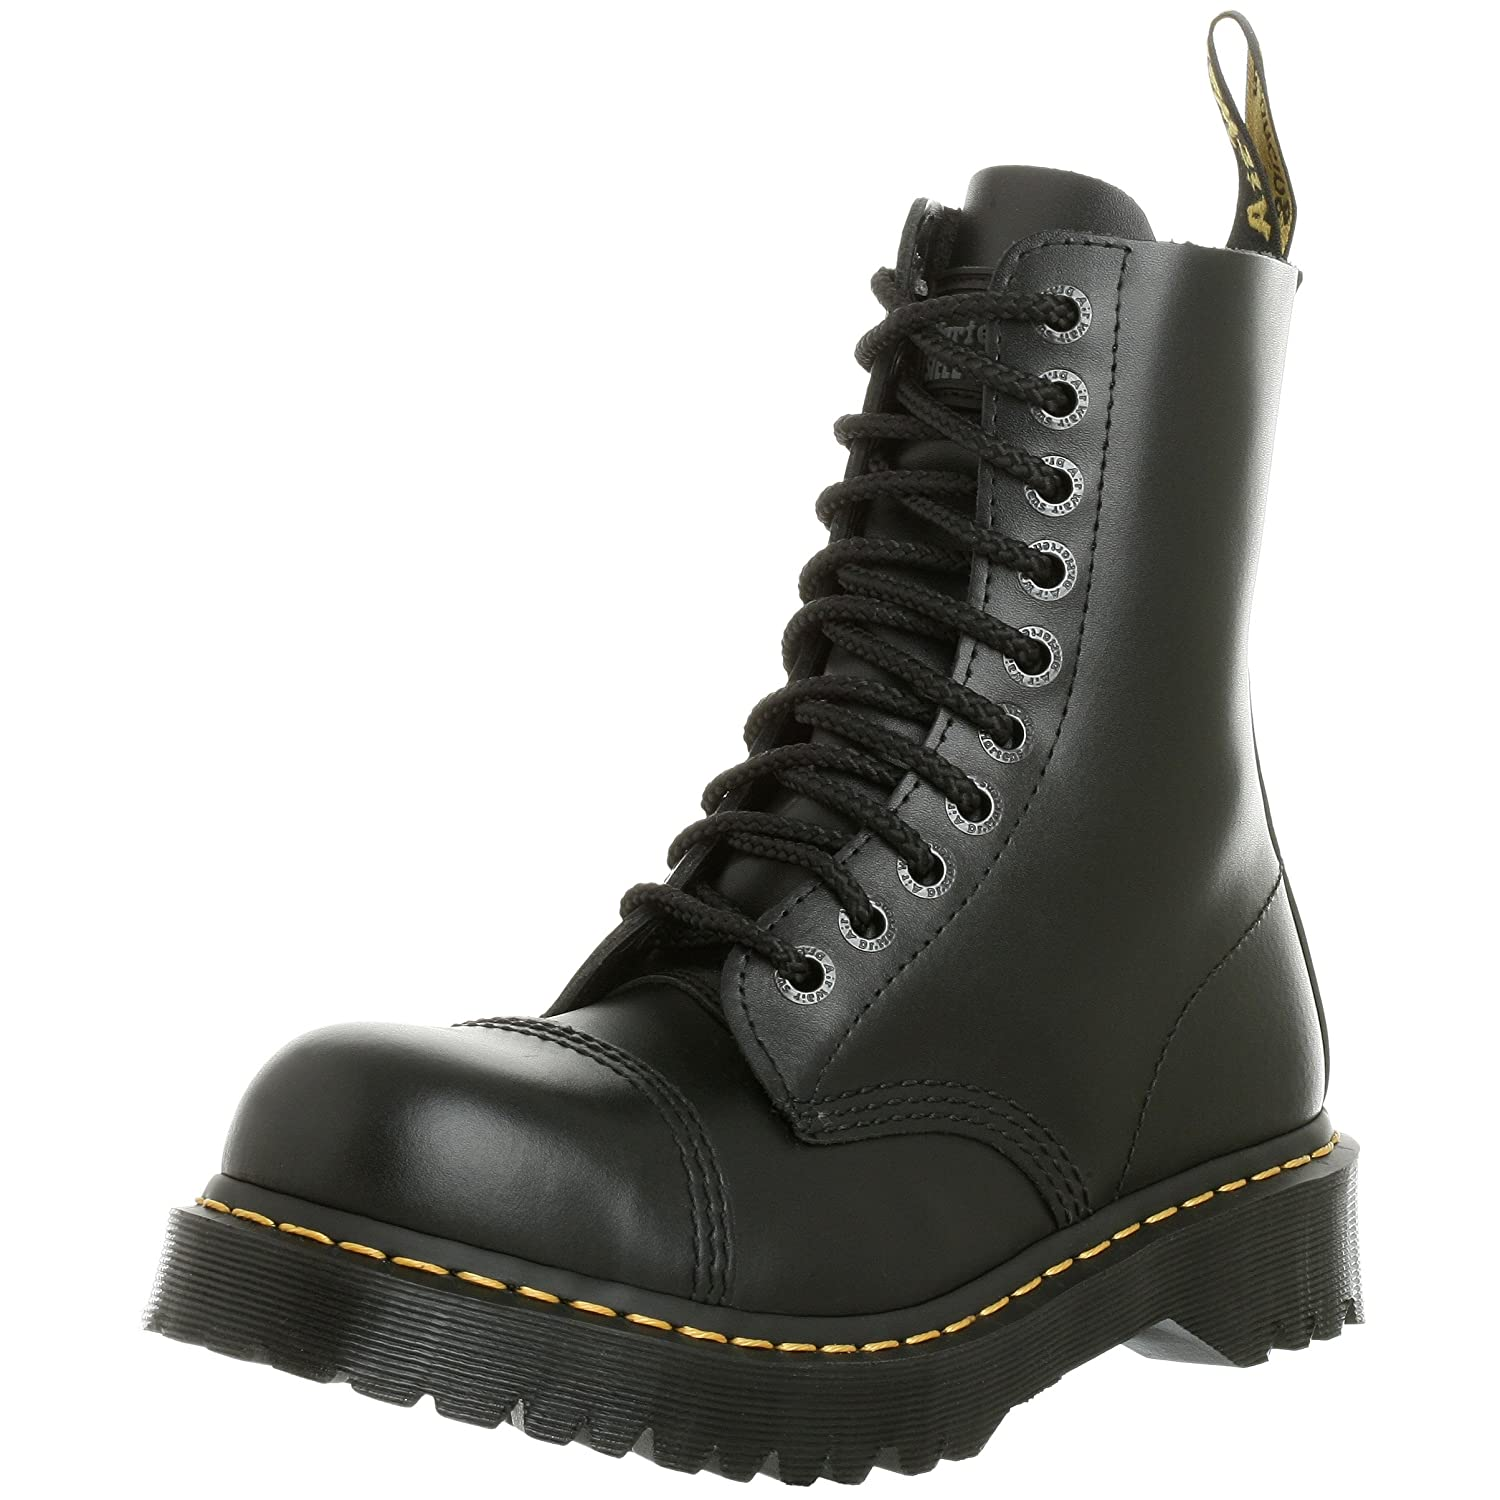 Dr. Martens Men's/Women's 8761 Boot B0009RSKZQ 5 UK/M 6- W 7 M US|Black